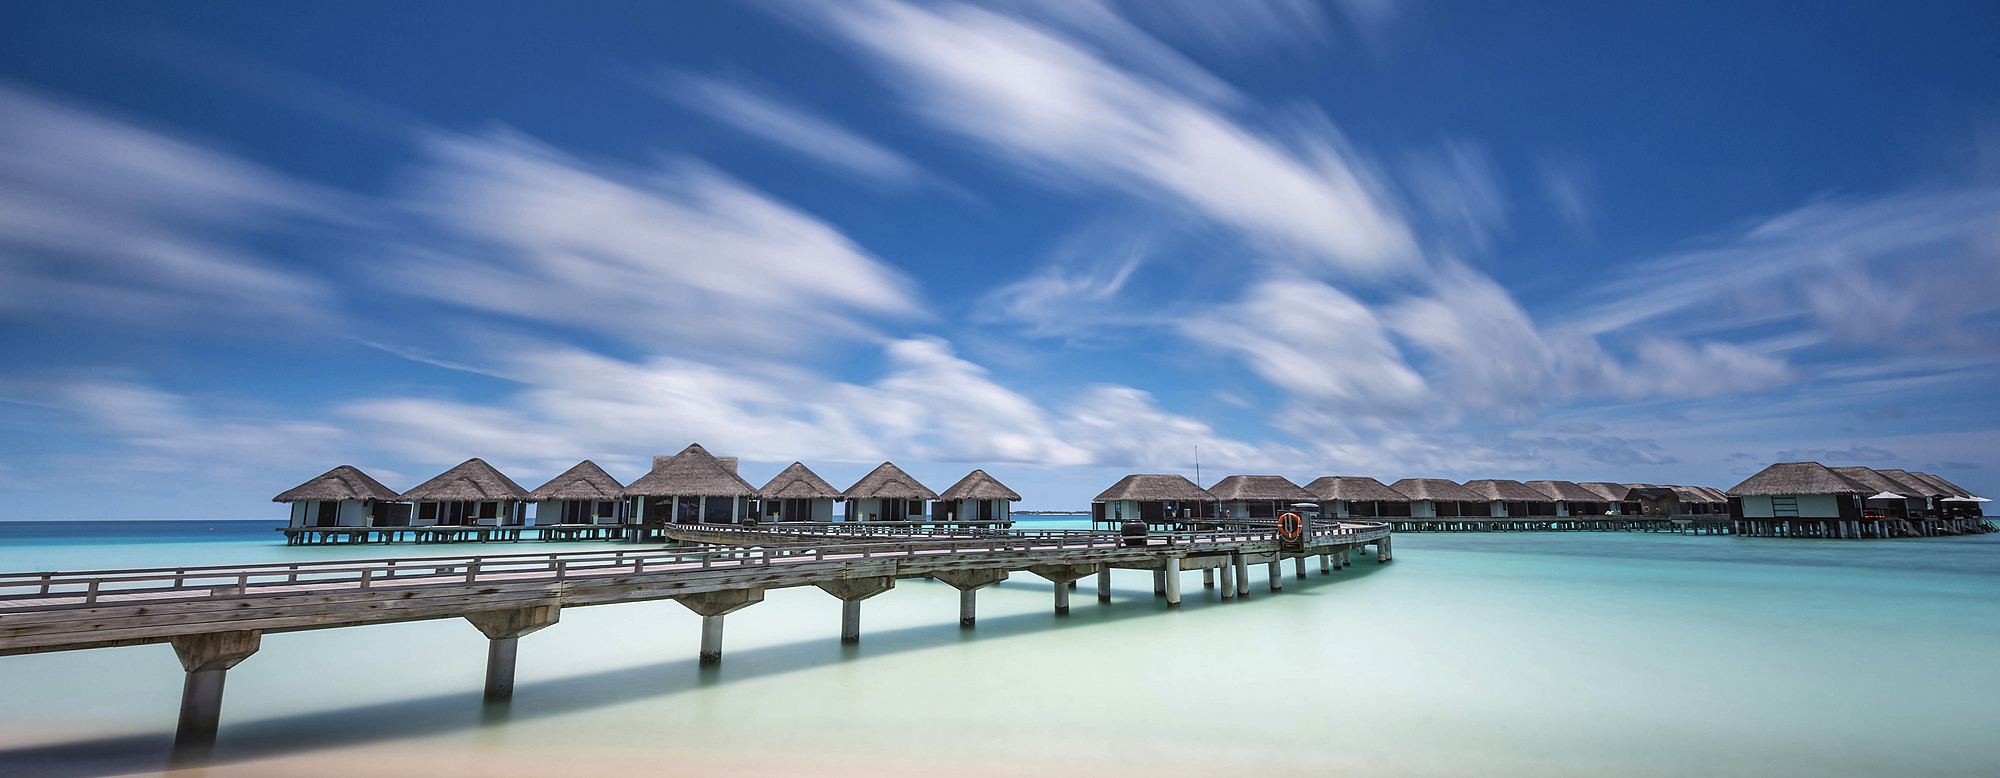 1174-4395 ( Mint Images ) - Huts along a walkway in clear ocean waters.